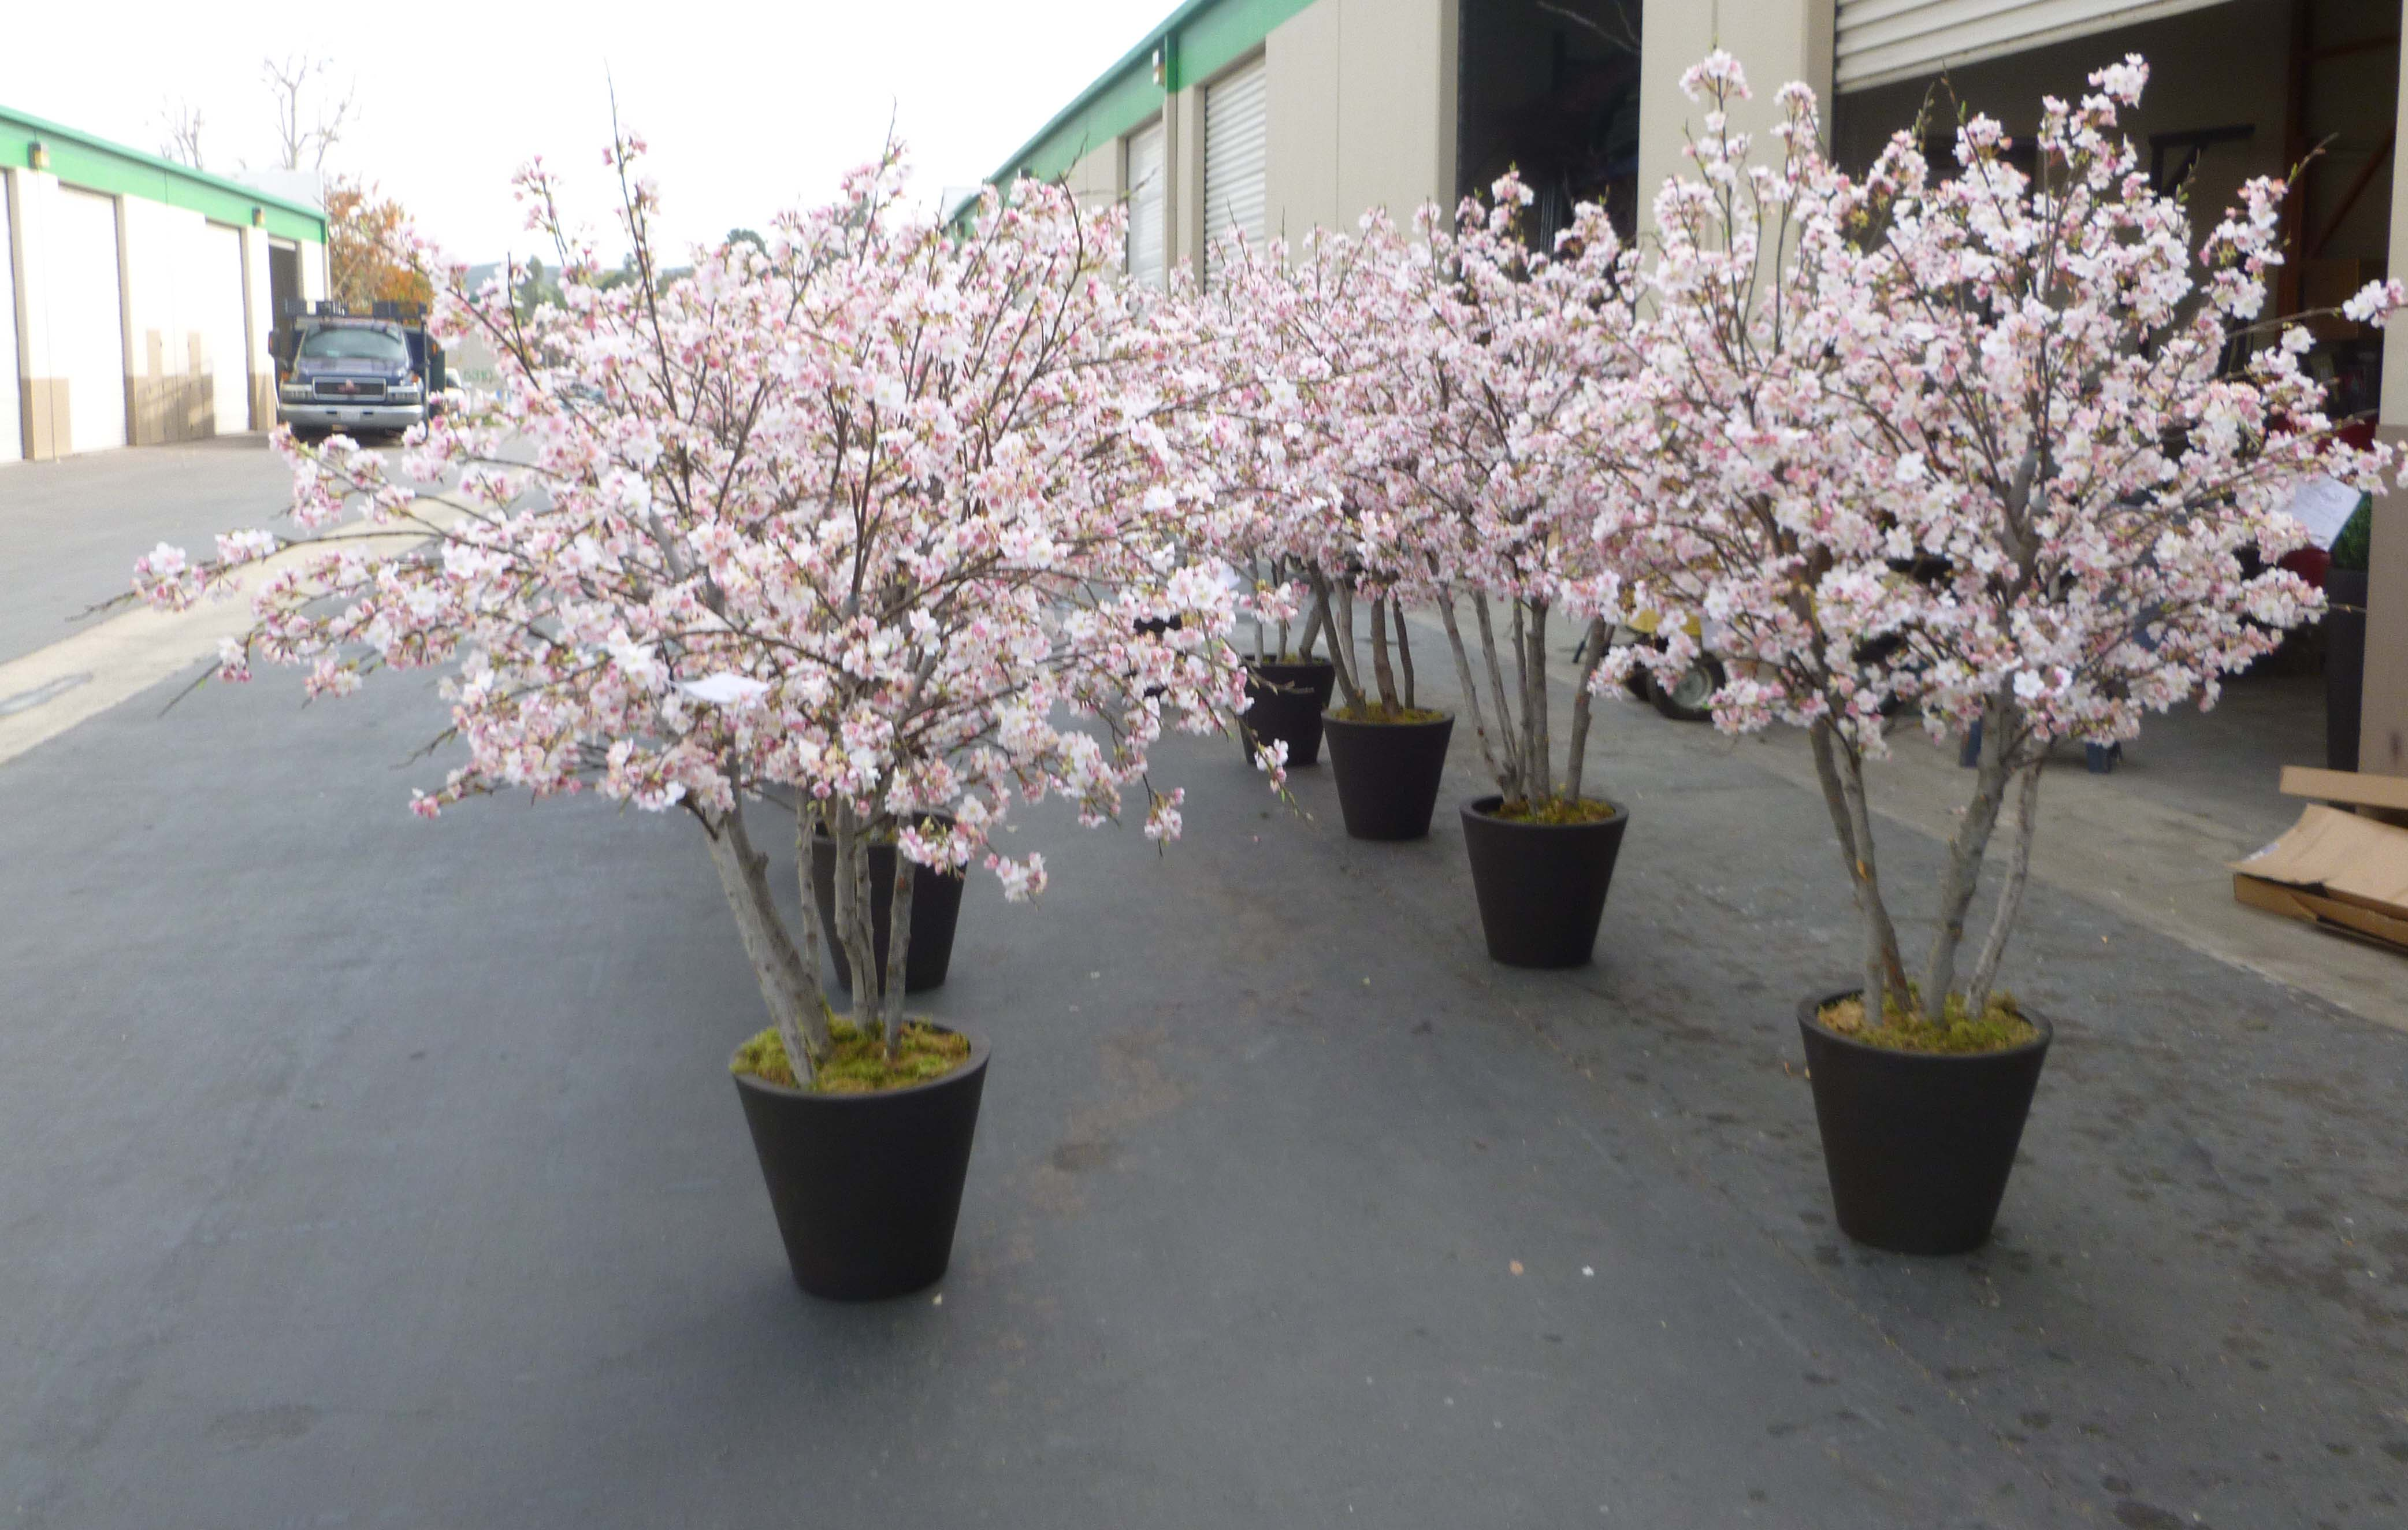 Ringing In Chinese New Year With Cherry Blossom Trees At